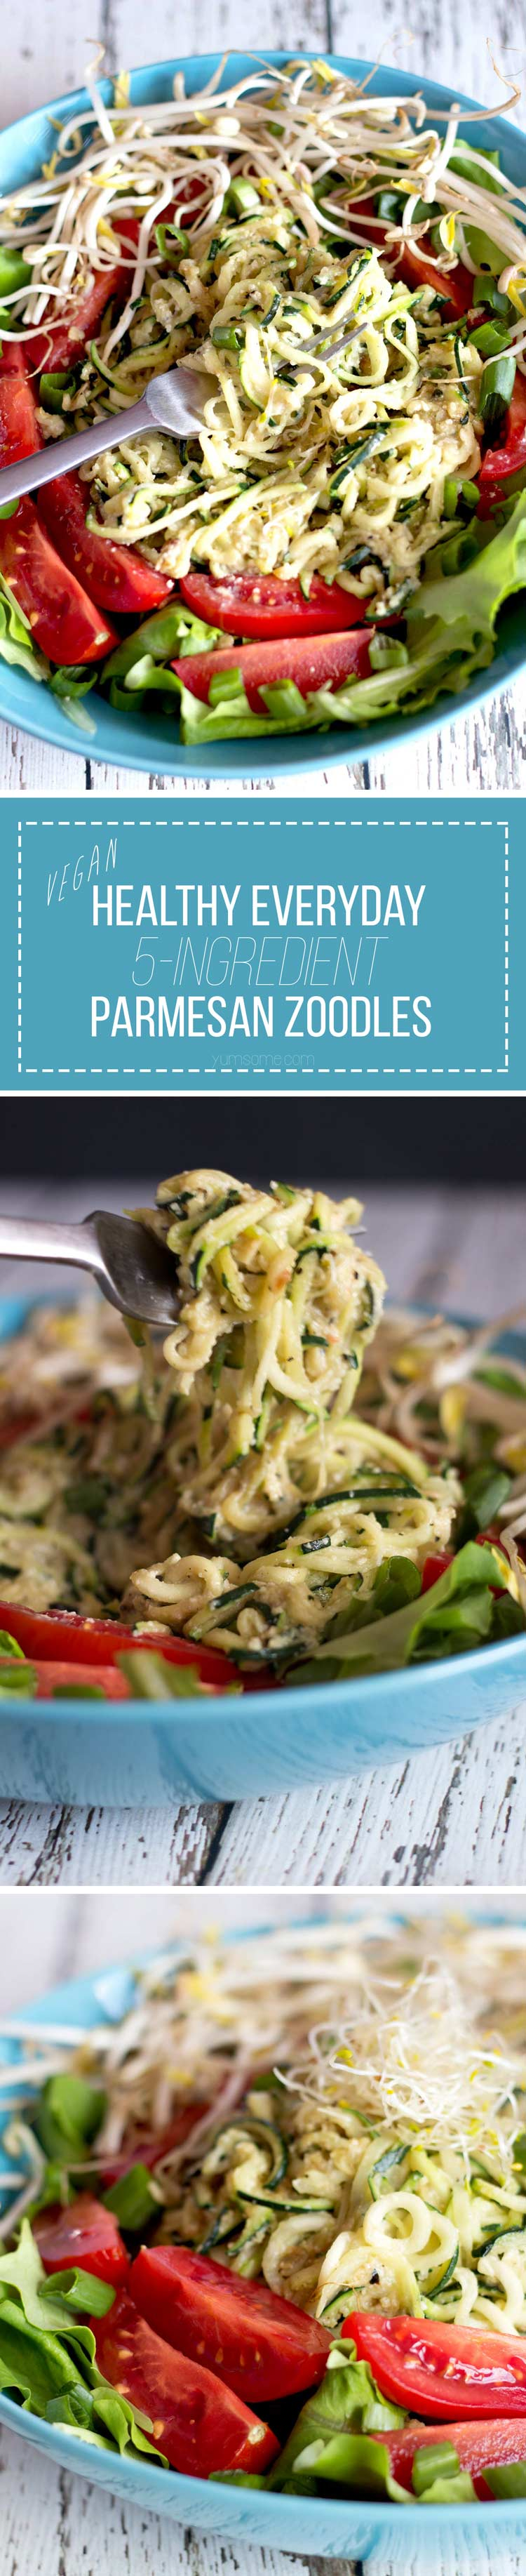 These healthy 5-ingredient vegan parmesan zoodles are stupidly simple to make, full of goodness and flavour, and make for a perfectly light weeknight supper. | yumsome.com